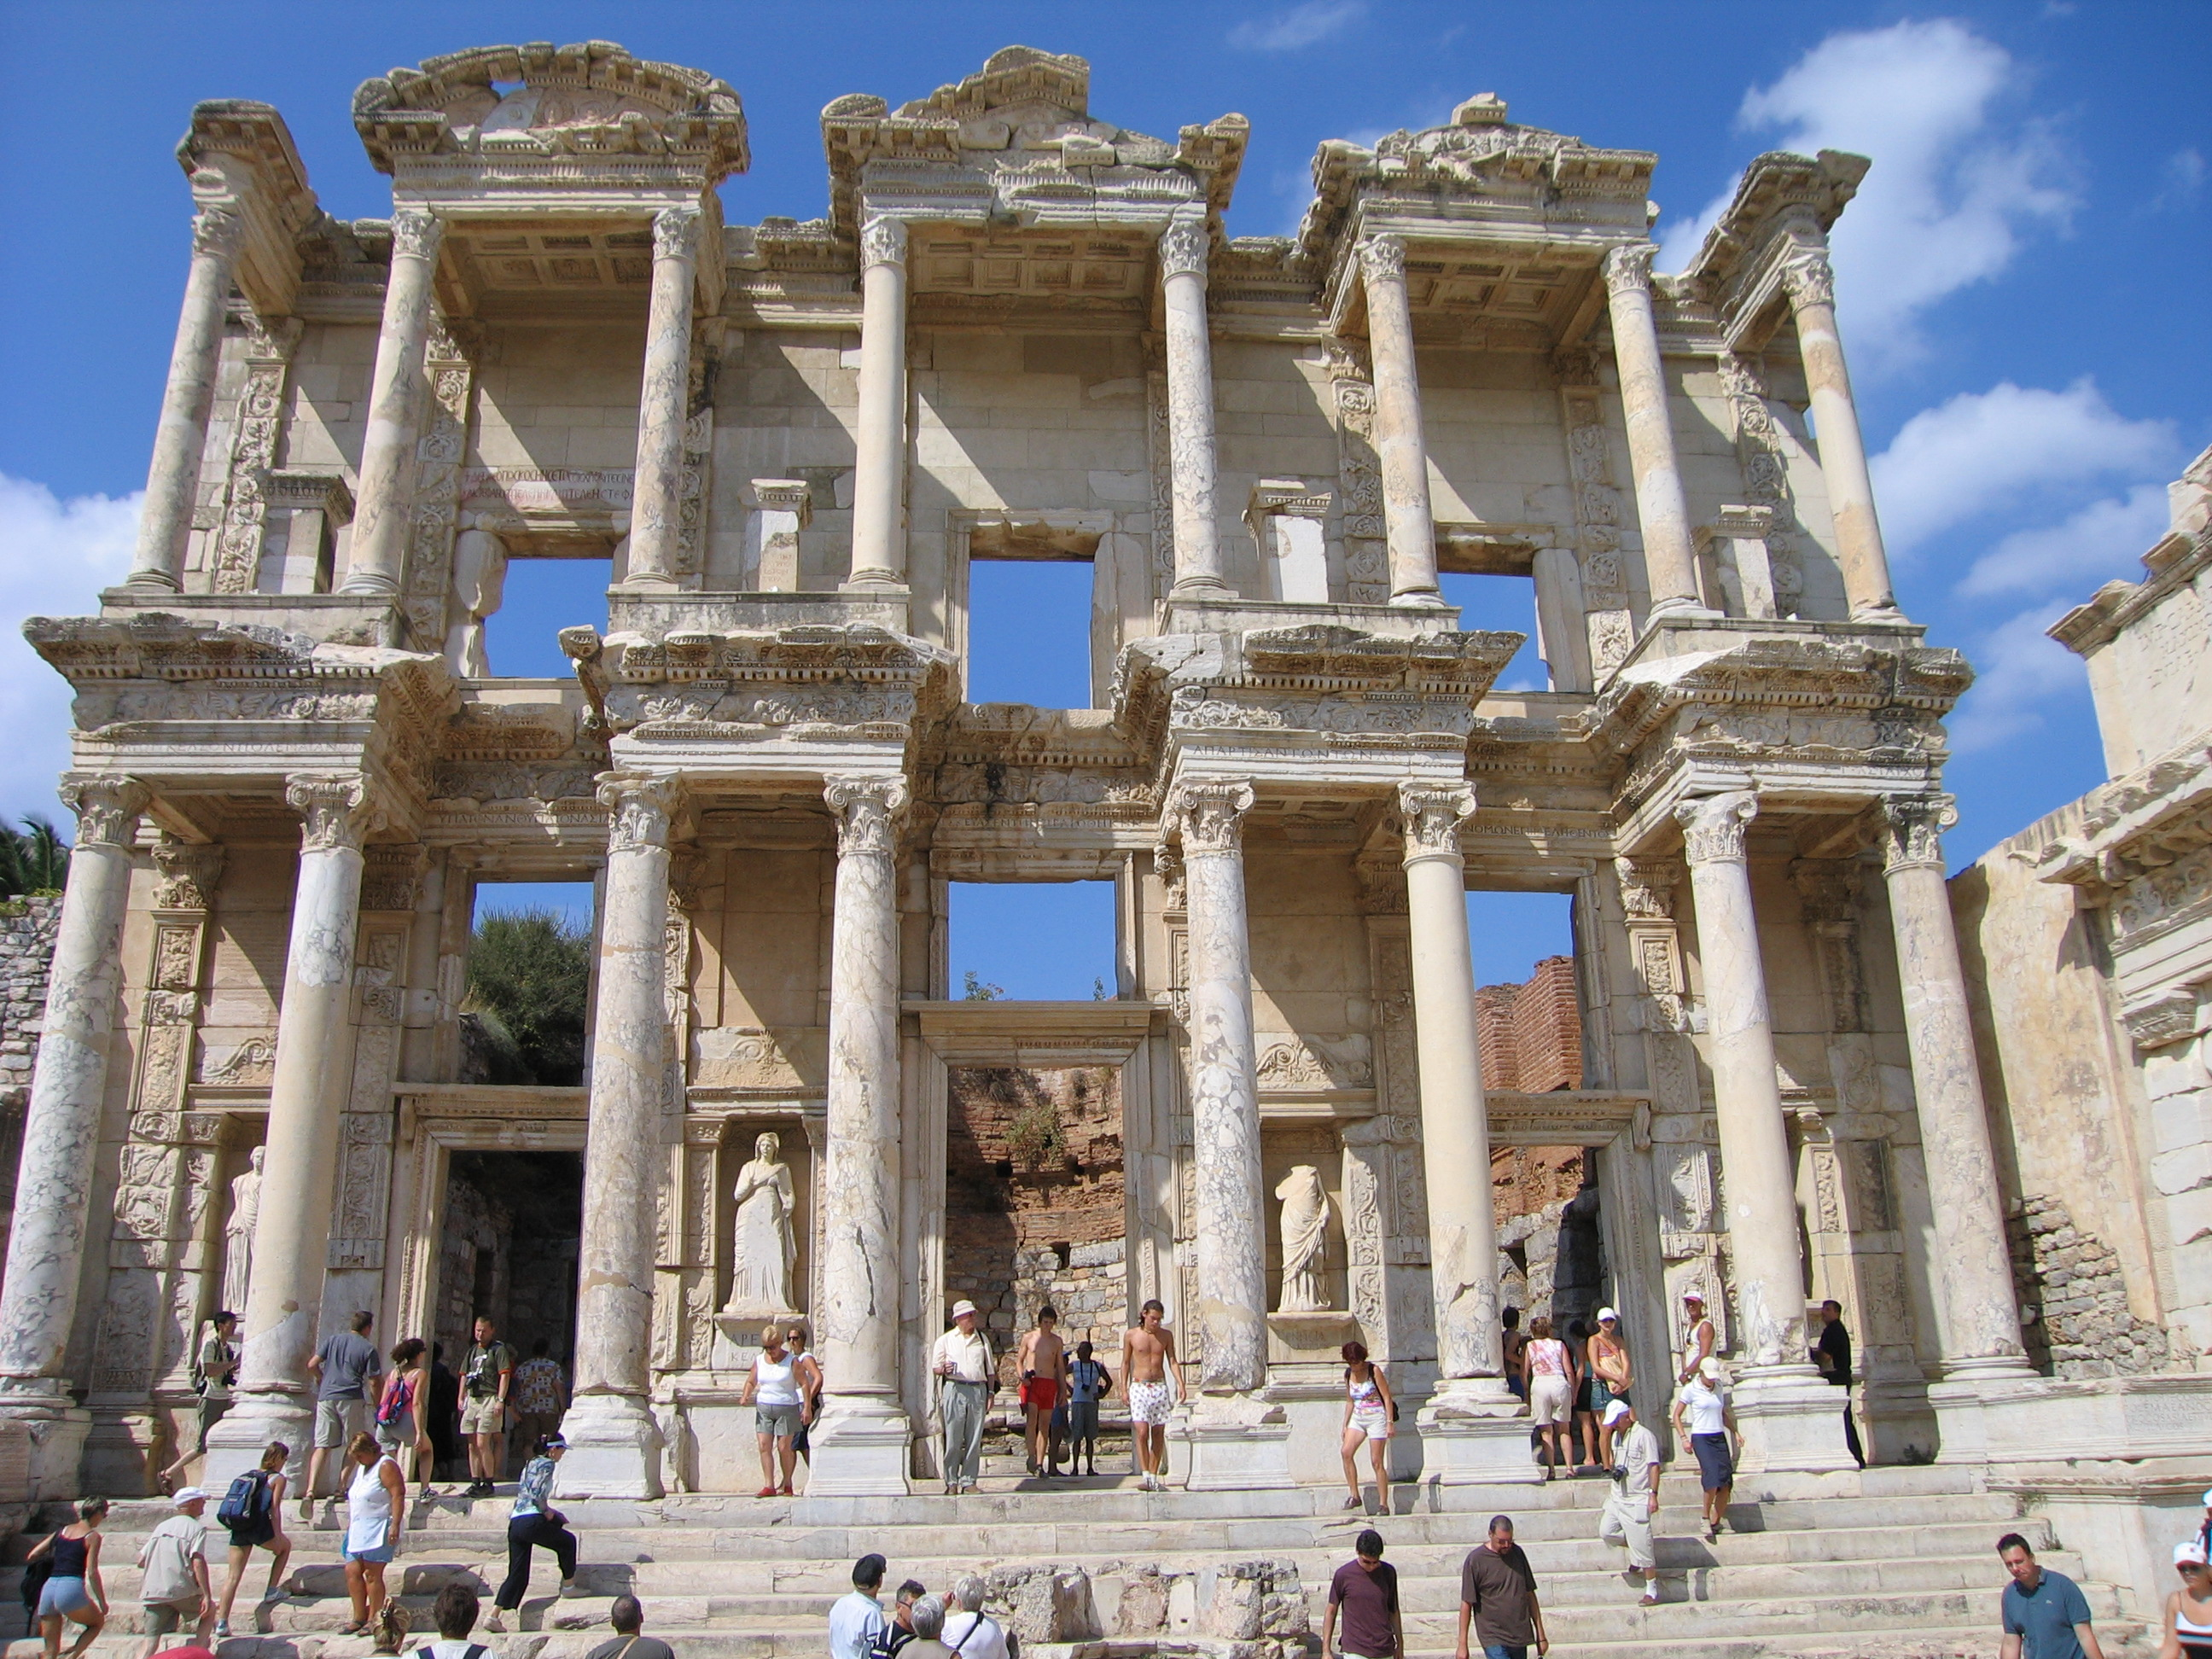 The Celsius Library in Ephesus, ephesus turkey, things to see in turkey